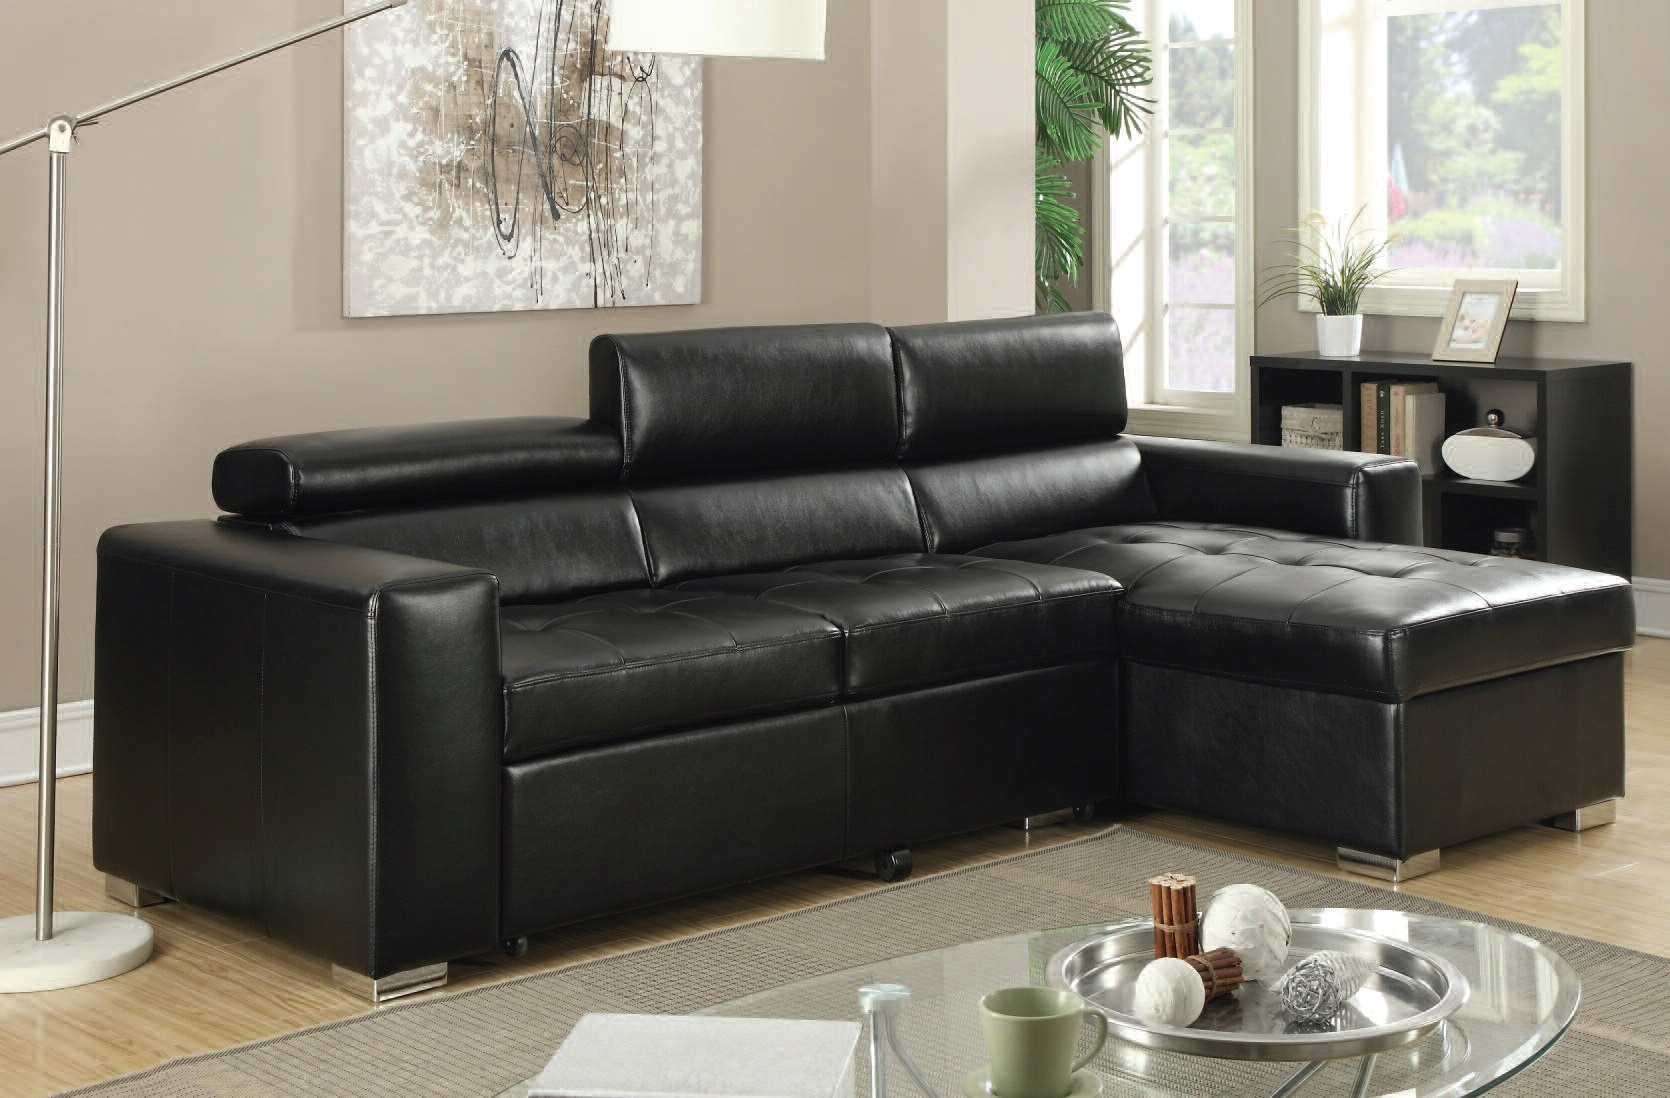 Acme Furniture Aidan Black Bonded Leather Sectional Sofa | The inside Aidan 4 Piece Sectionals (Image 2 of 30)